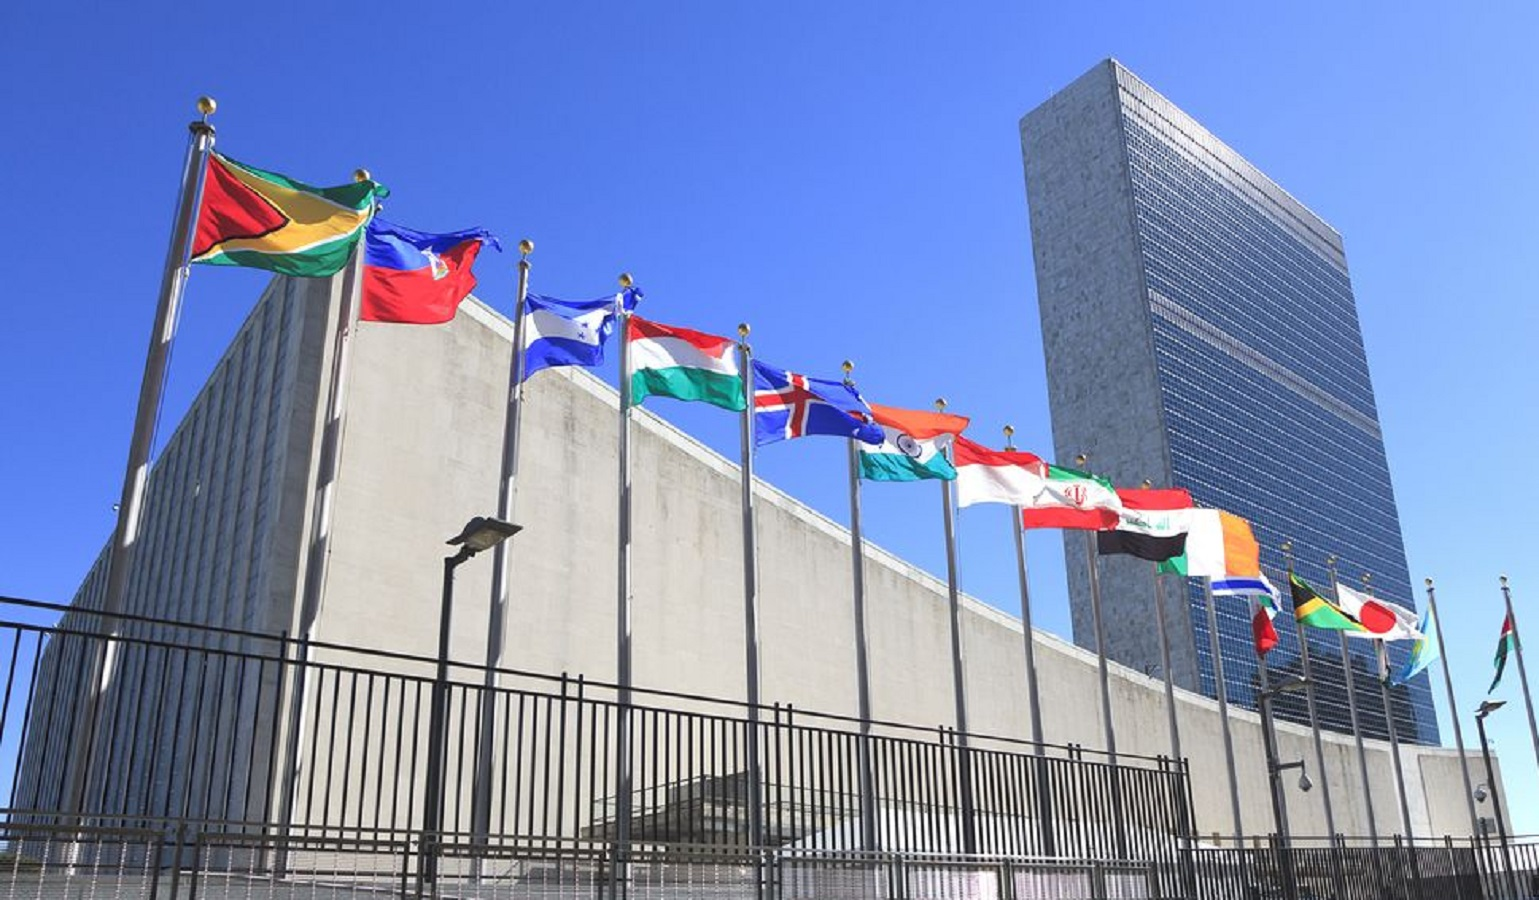 EXCLUSIVE: The UN Met with Targeted US Far Left Individuals and Entities Before the 2020 Election – What Did They Discuss and Did They Interfere in the 2020 Election?